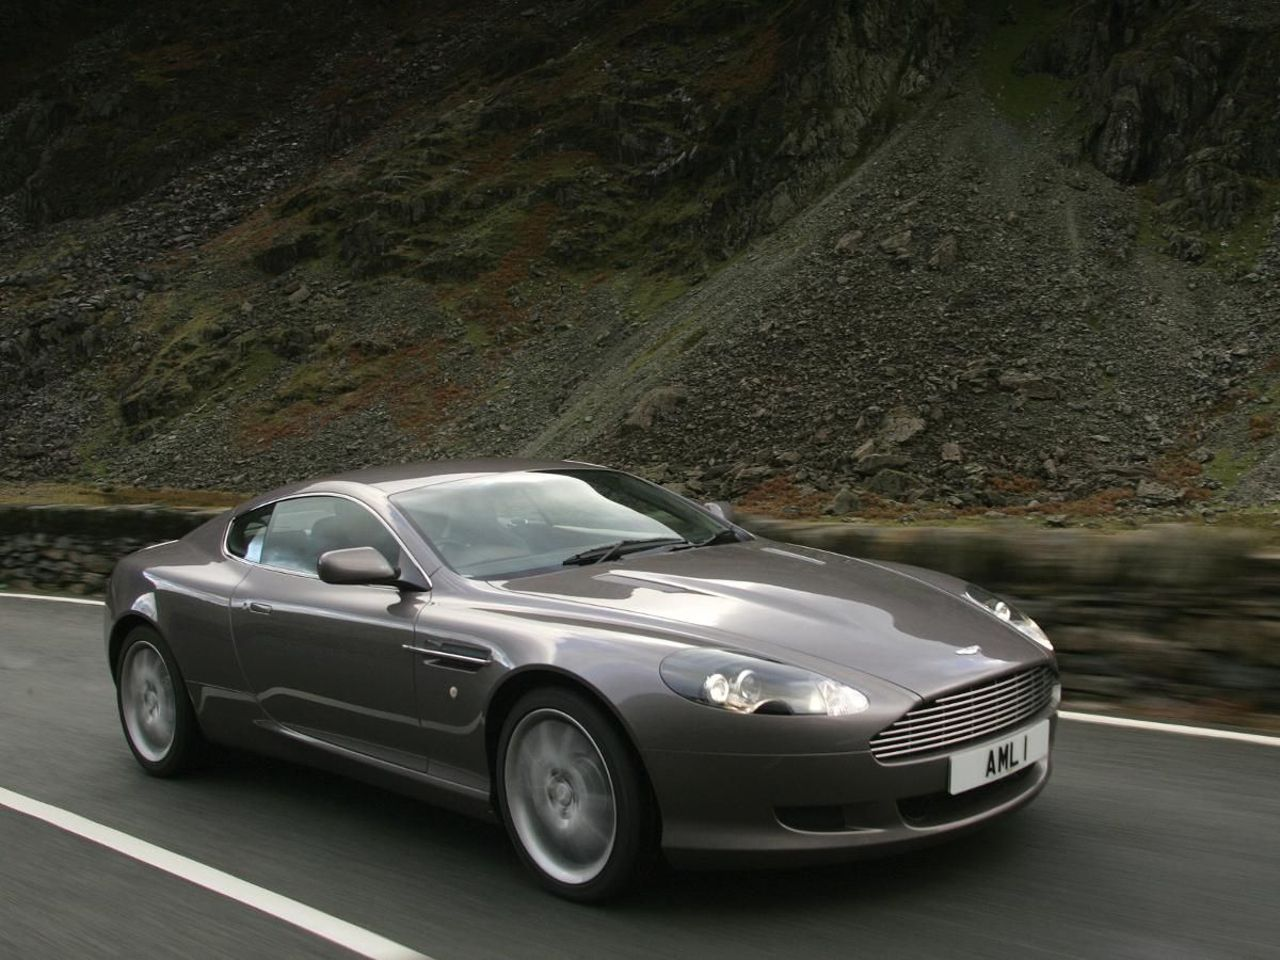 aston martin db9 coupe 2008 review auto trader uk. Black Bedroom Furniture Sets. Home Design Ideas